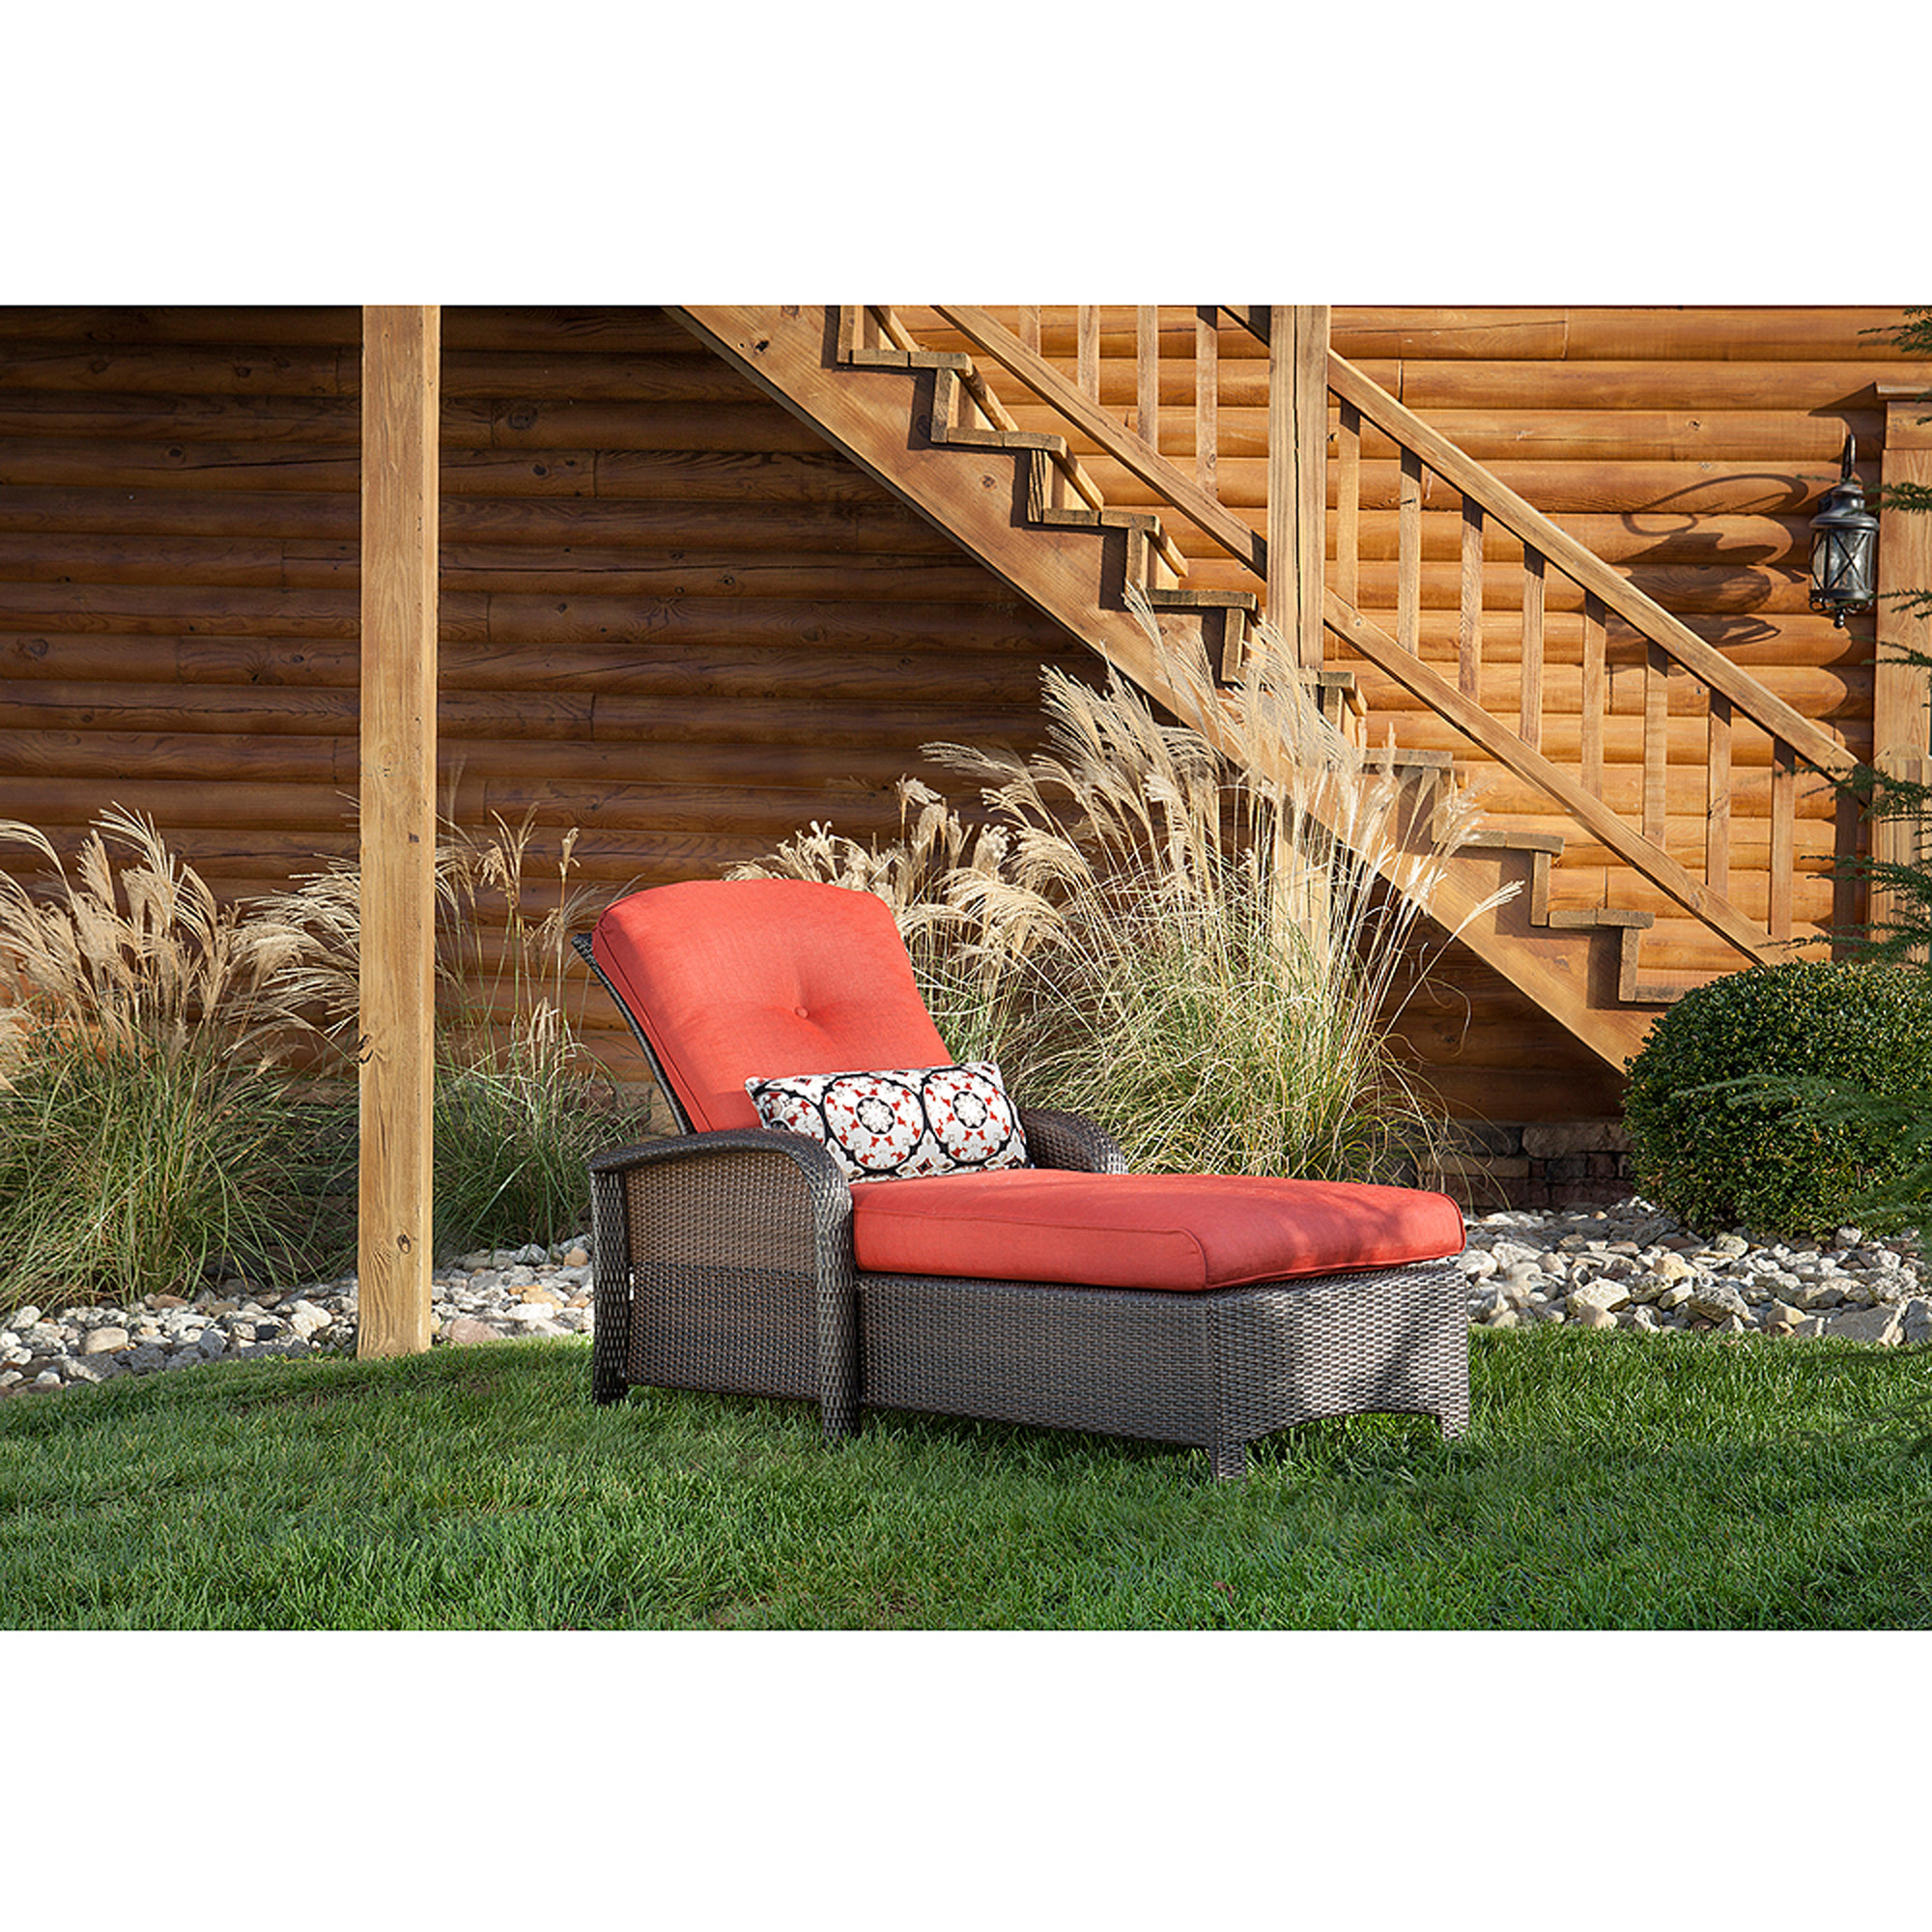 Hanover Strathmere Outdoor Luxury Chaise Lounge, Crimson Red by Hanover Outdoor Furniture